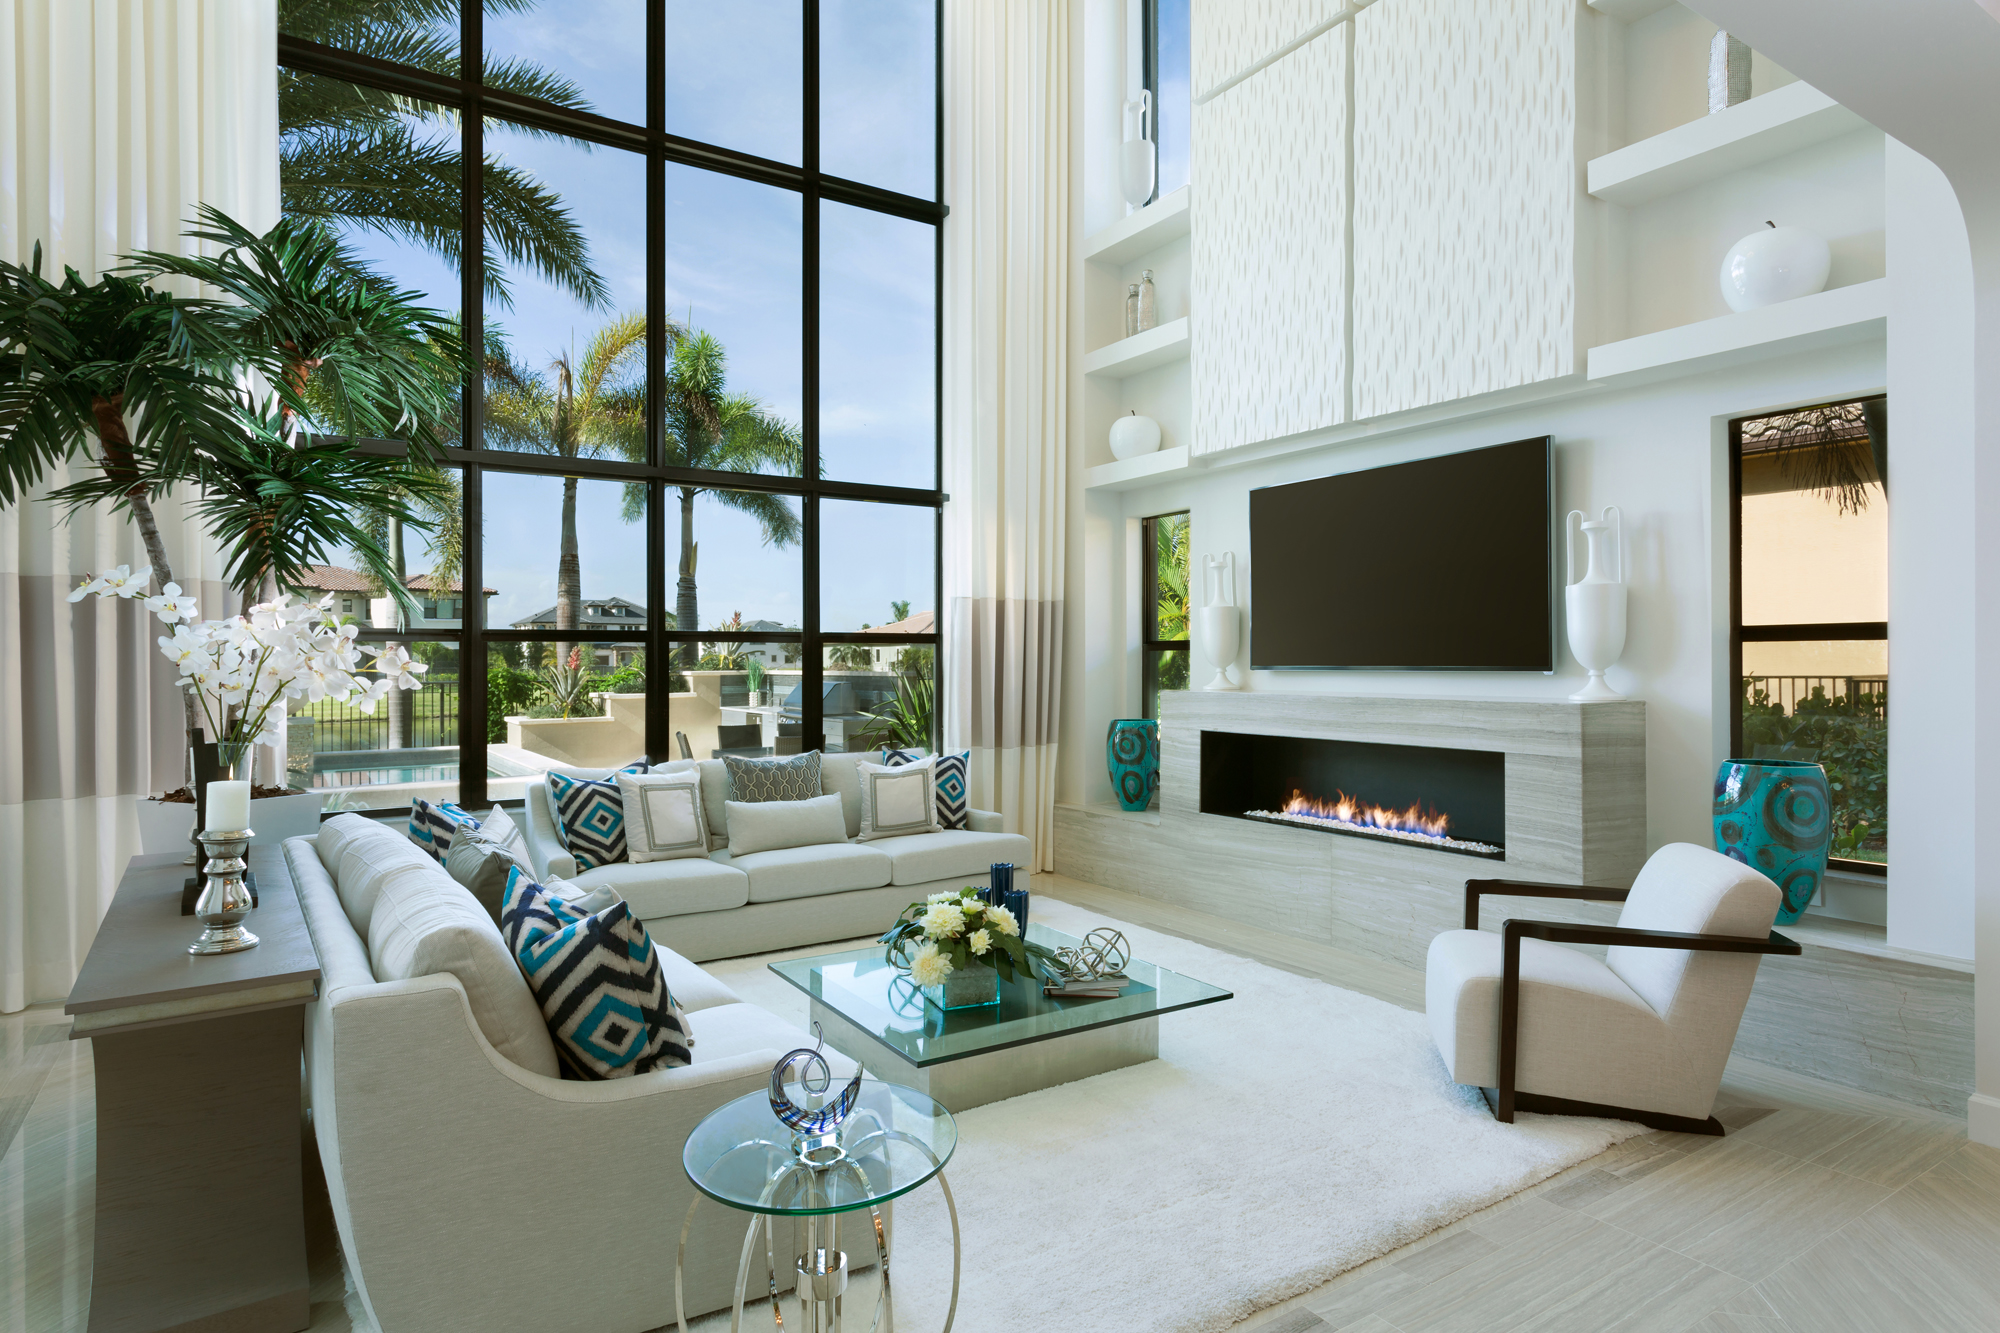 residential-architectural-photographer-florida.jpg